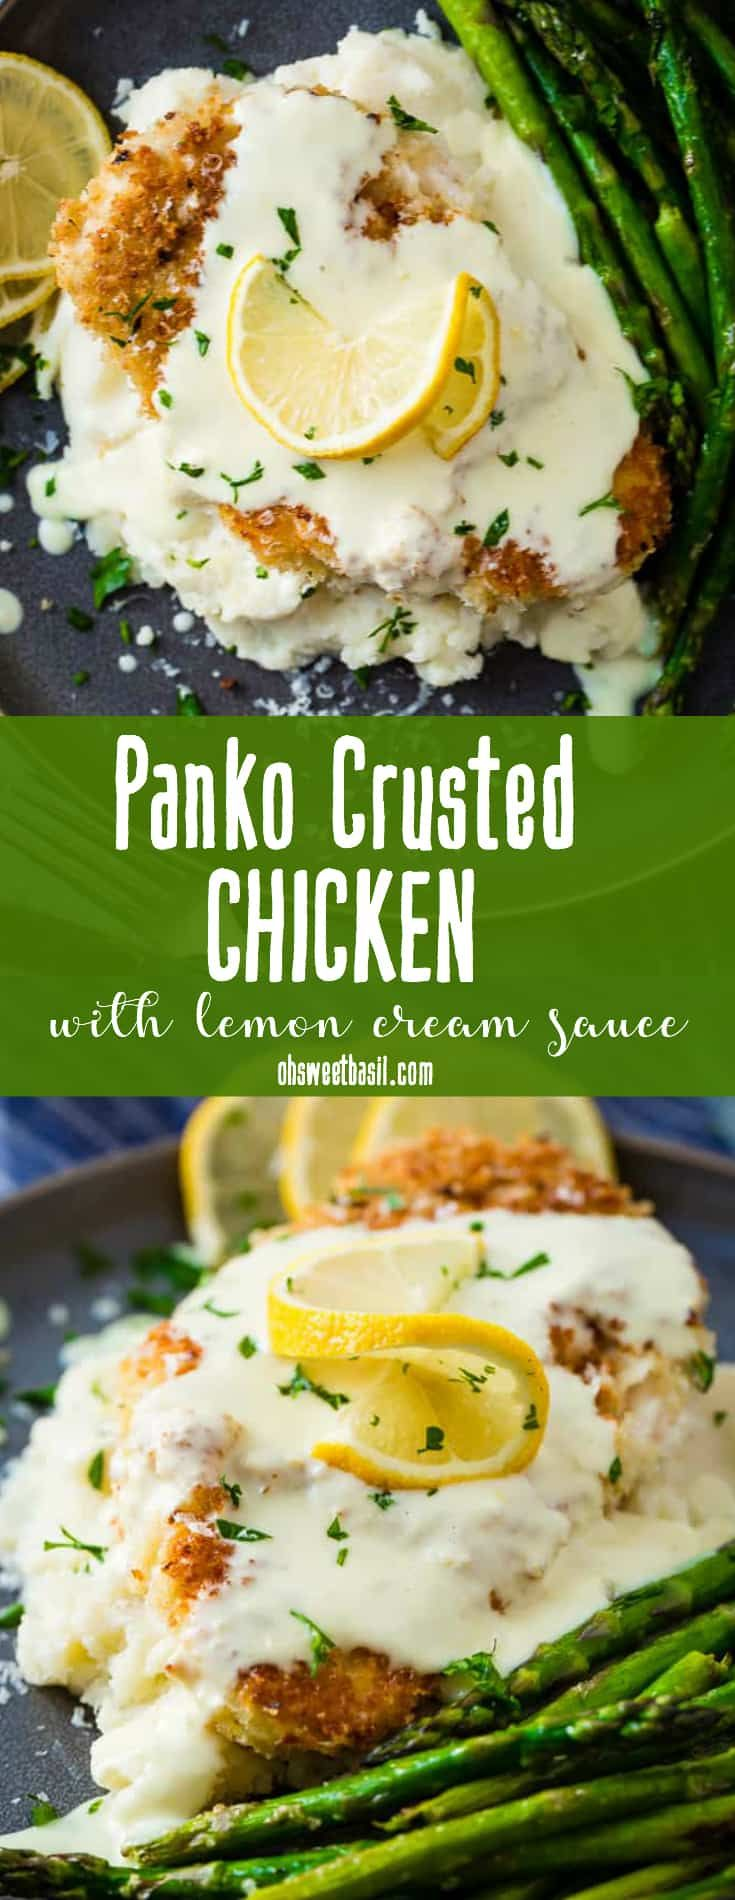 This Panko Crusted Chicken with Lemon Cream Sauce is our favorite dish to make when we have guests over! It's breaded chicken with a creamy sauce and similar to the Chicken Costoletta from the Cheesecake Factory.  #copycat #cheesecakefactory ohsweetbasil.com via @ohsweetbasil